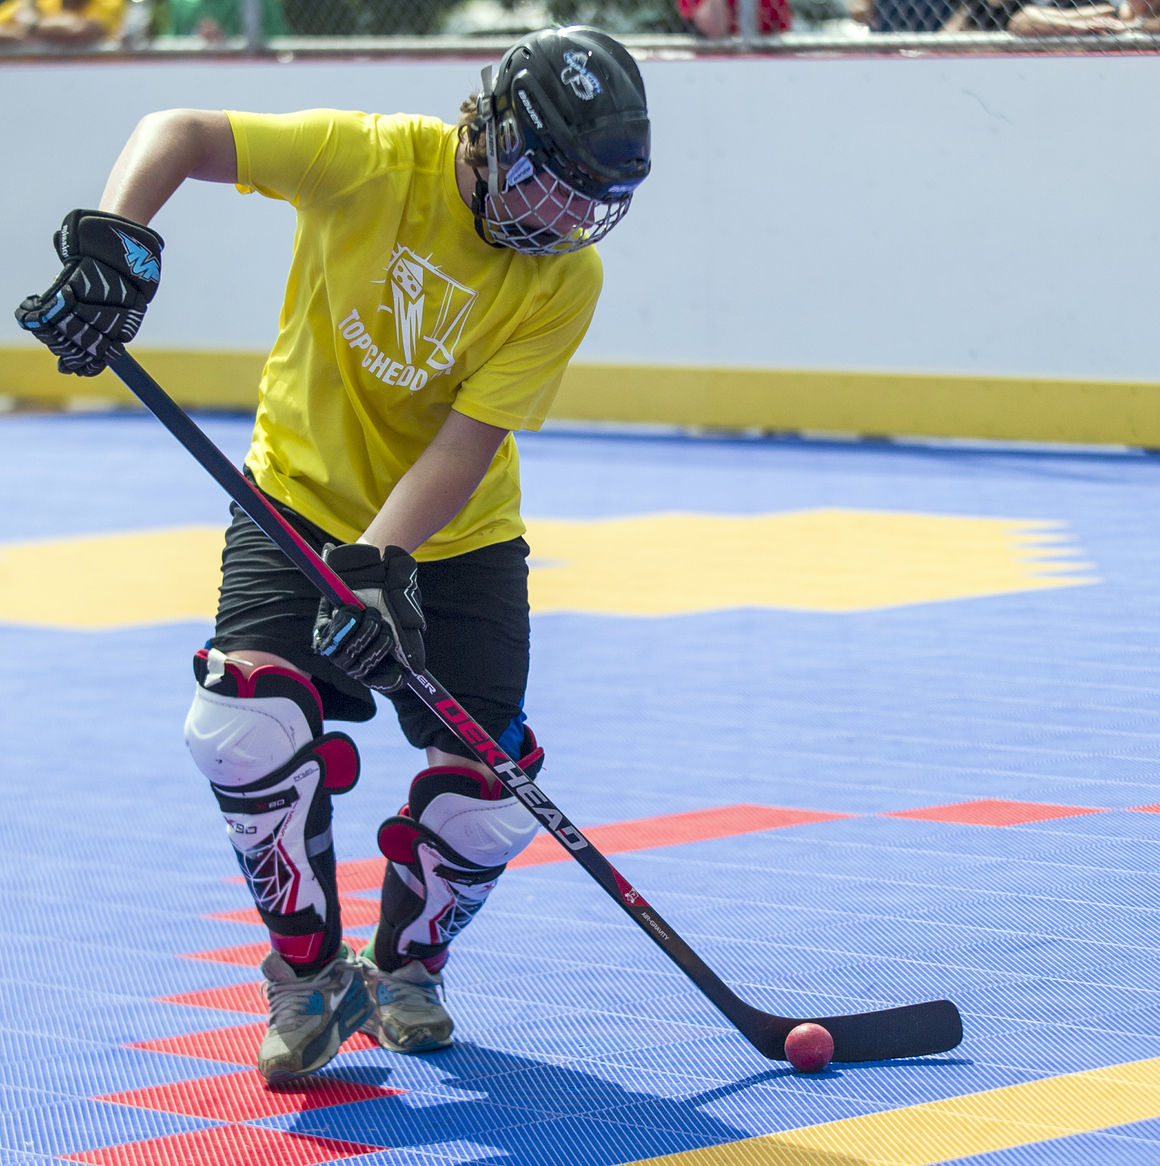 Give a kid a hockey stick, and life changes | Life